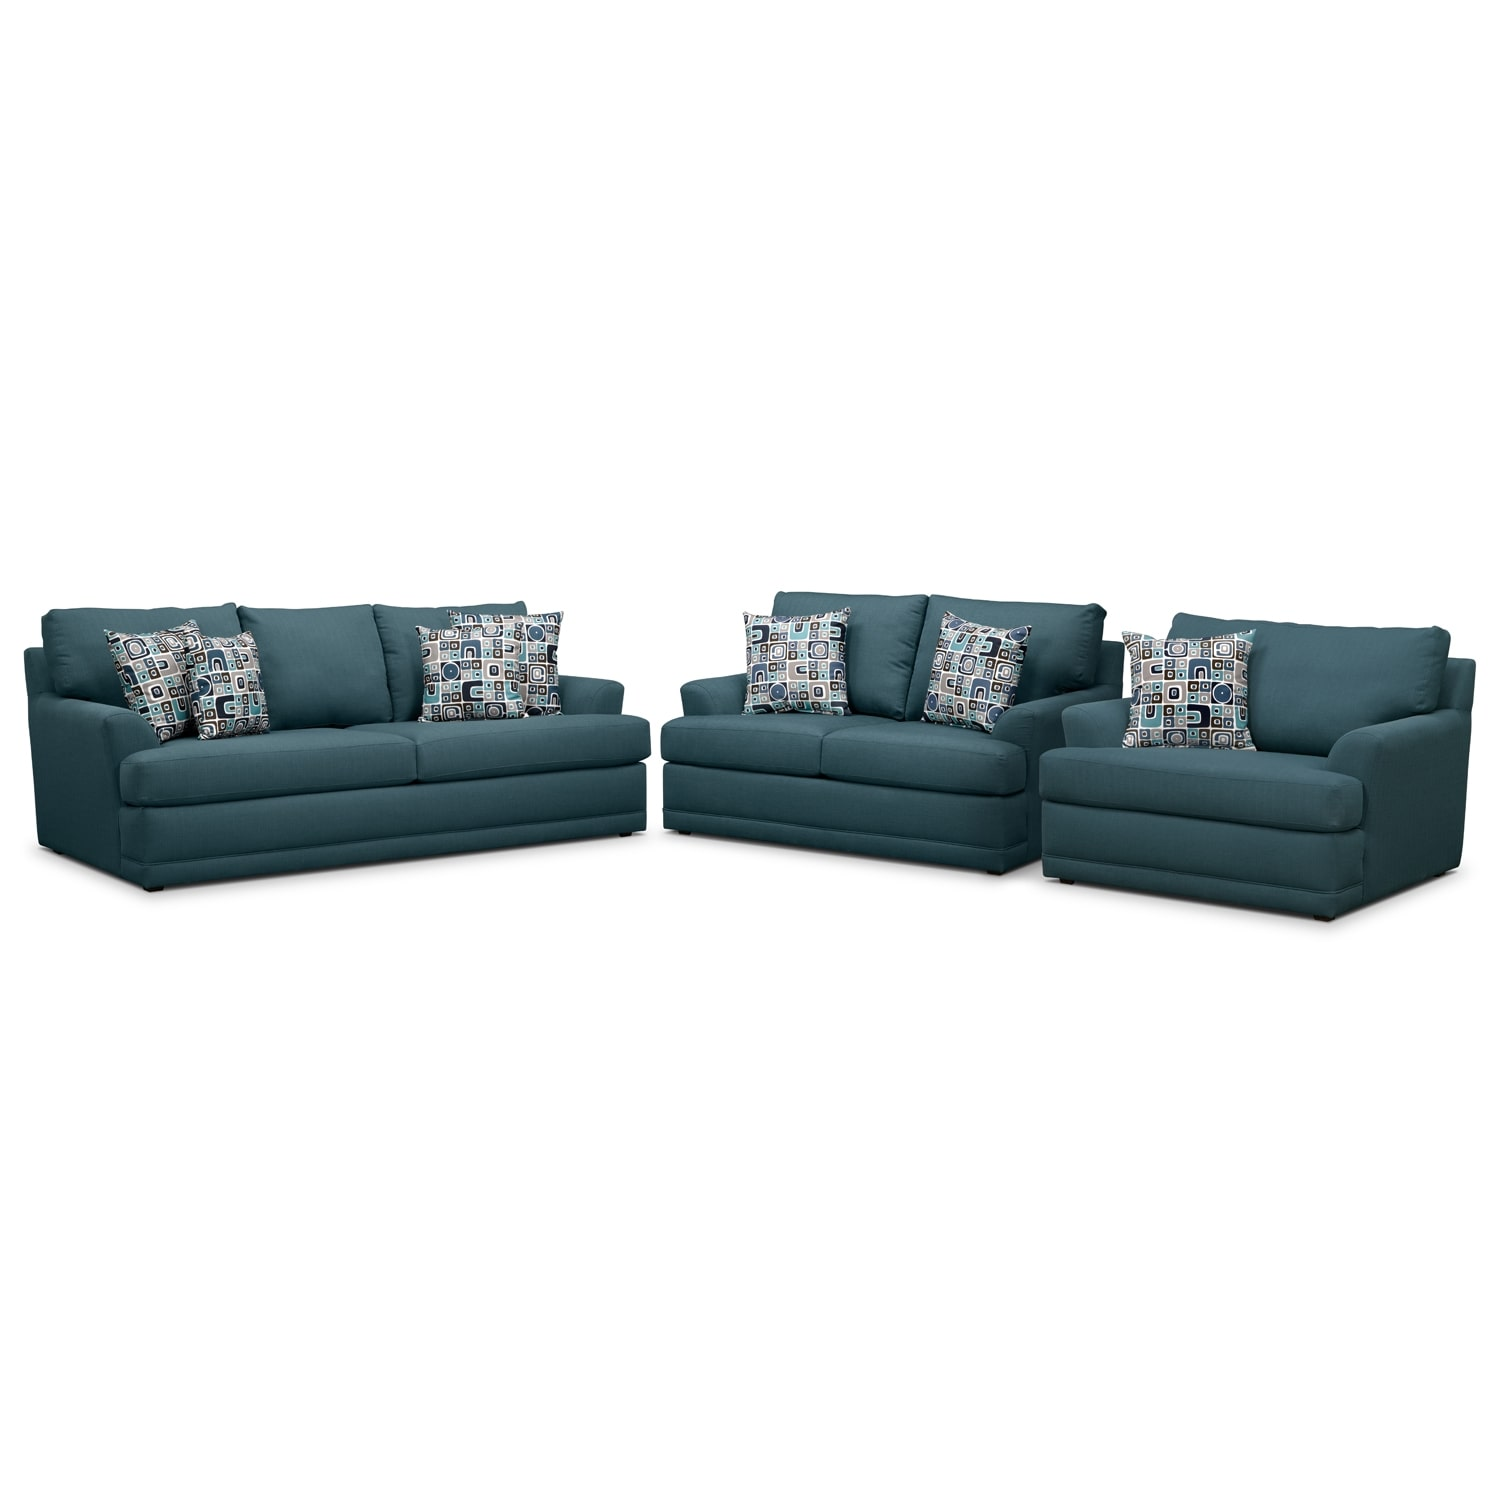 [Kismet 3 Pc. Living Room w/ Chair and a Half]